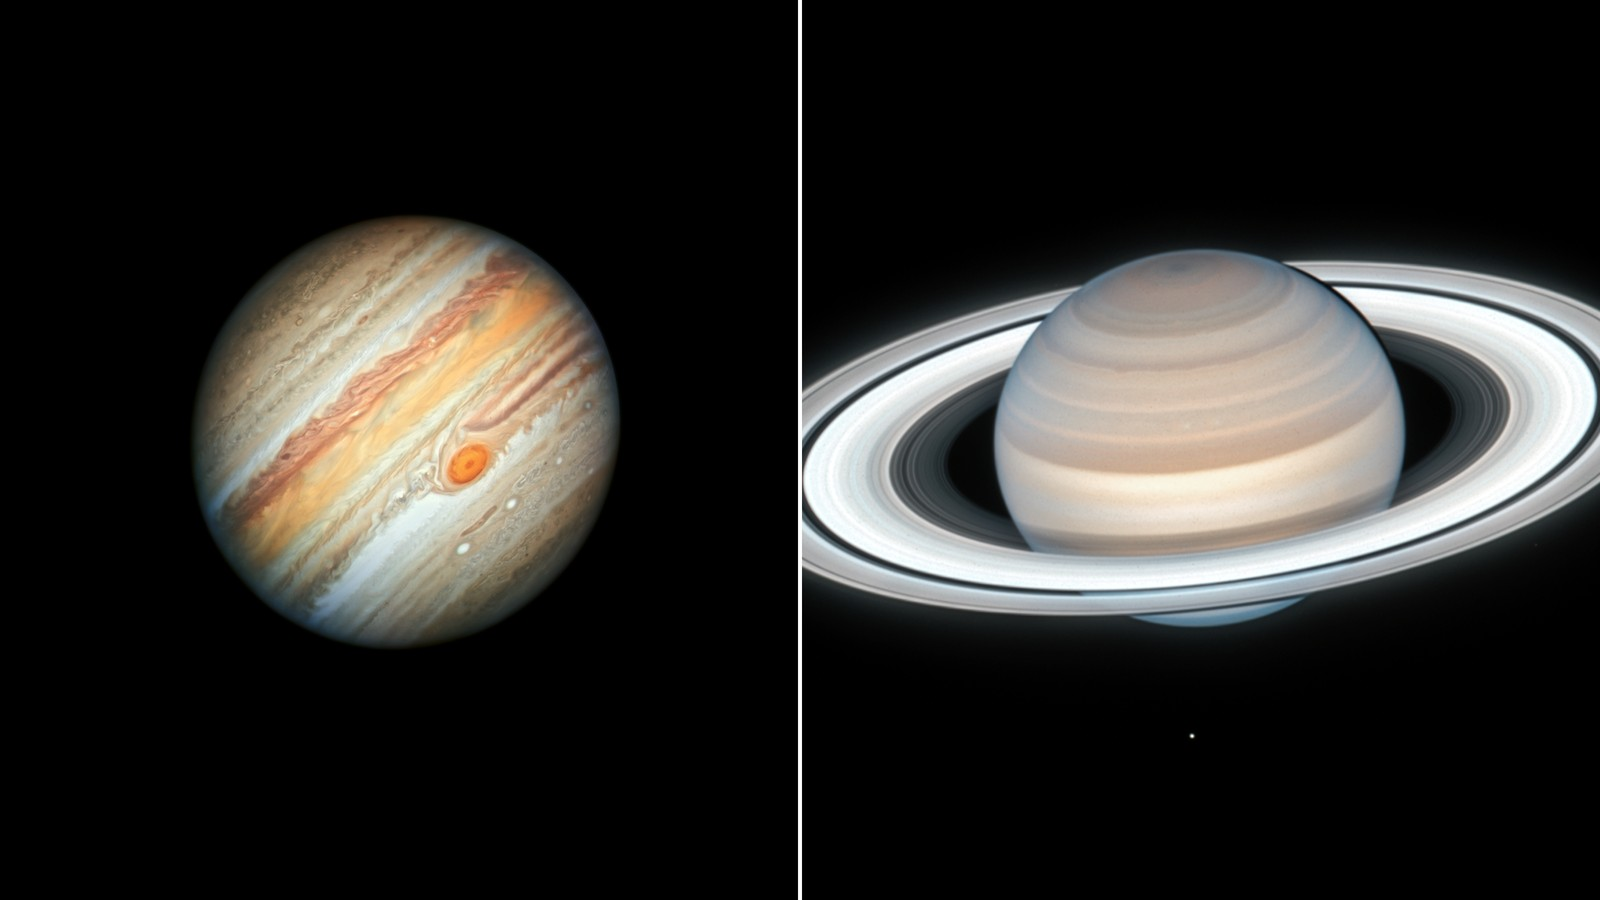 Just in time for Christmas, Jupiter and Saturn will come closer than they have since the Middle Ages